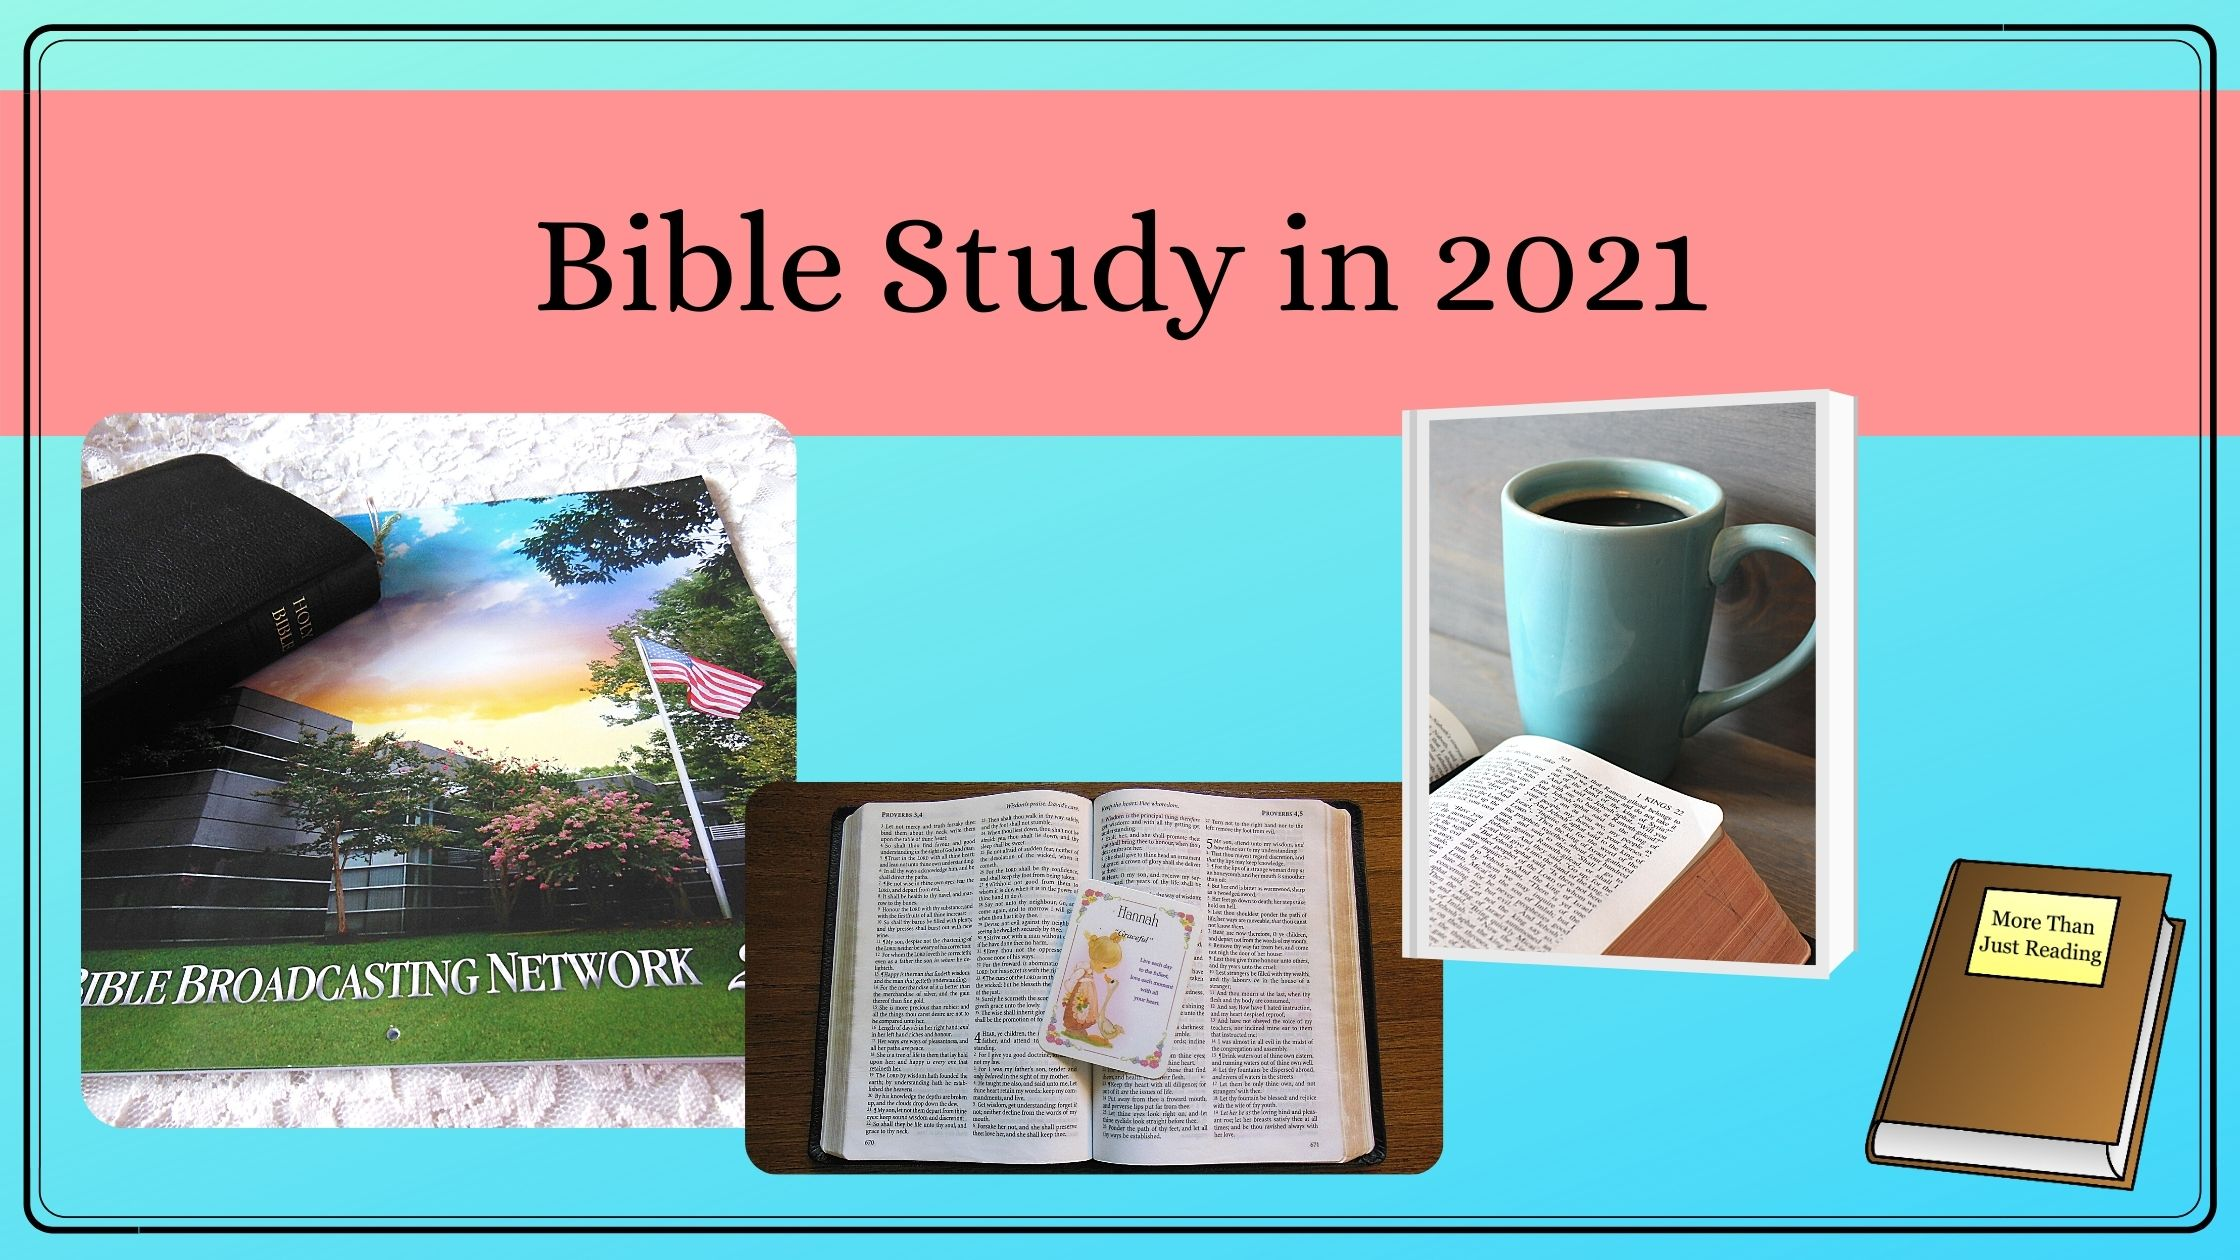 Bible study in 2021